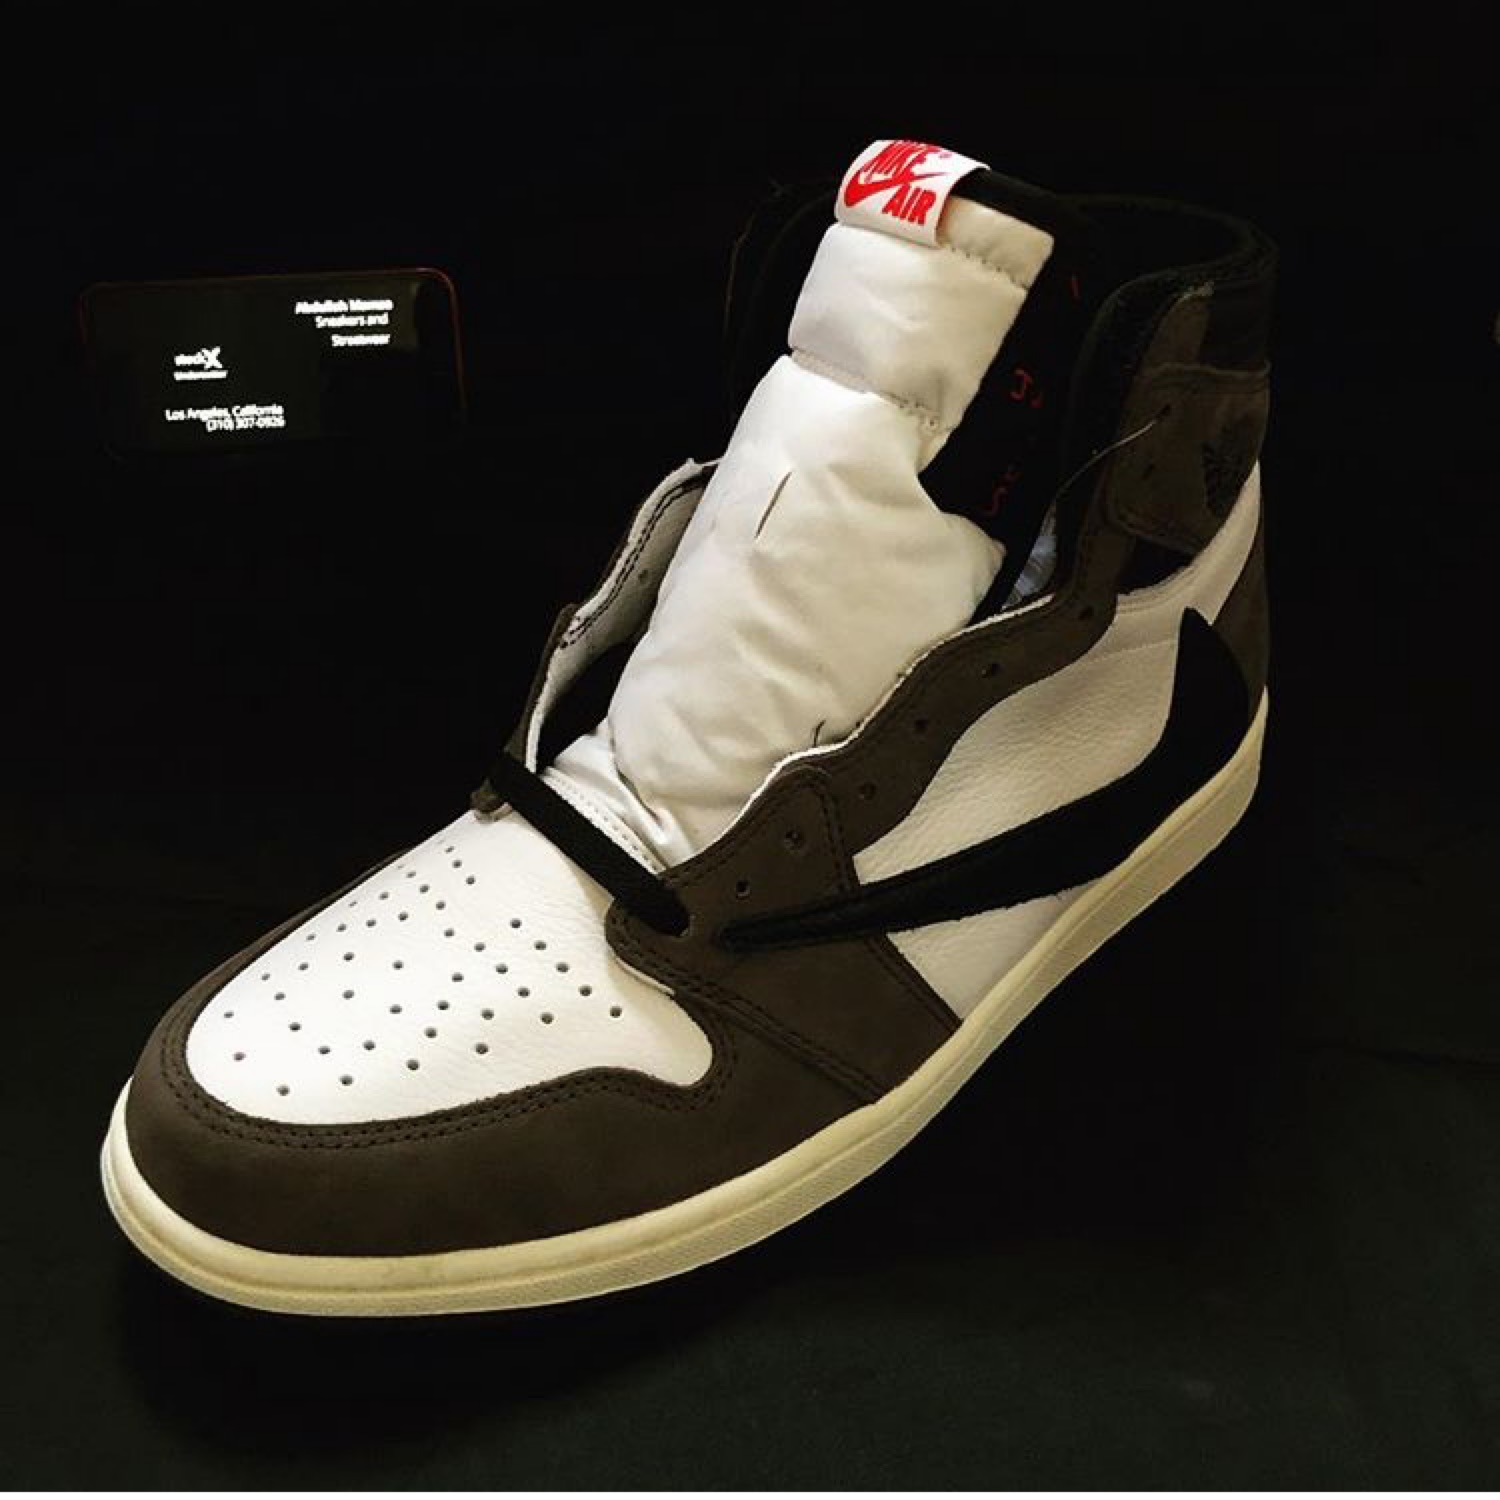 factory authentic 8e97d f5c6b Ds Cactus Jack Air Jordan 1 Travis Scott